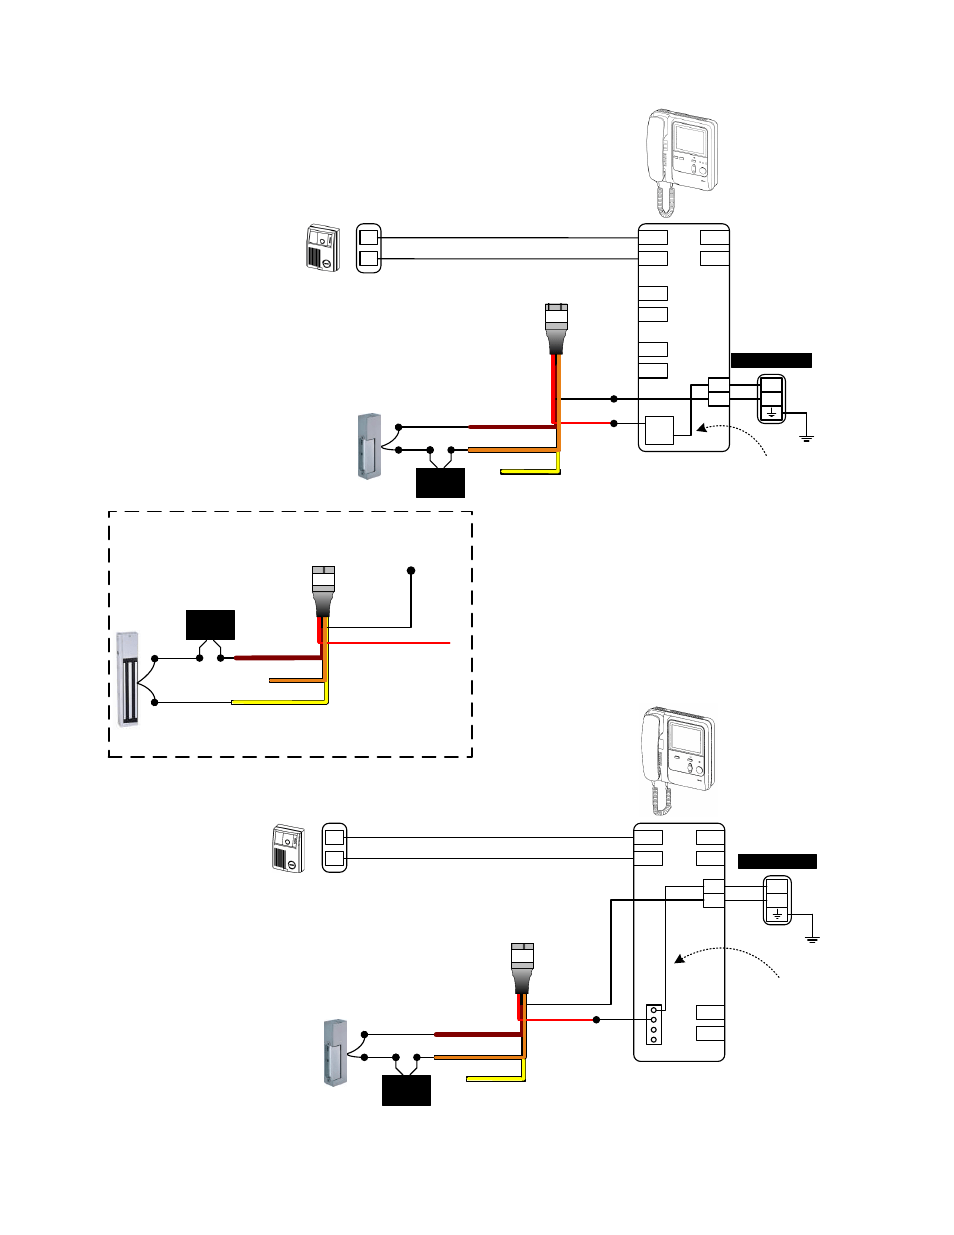 aiphone door release relay module ry 24l page2?resize\=665%2C861 wiring diagram hid edge solo 5 pin relay wiring diagram, led von duprin wiring diagram at cos-gaming.co